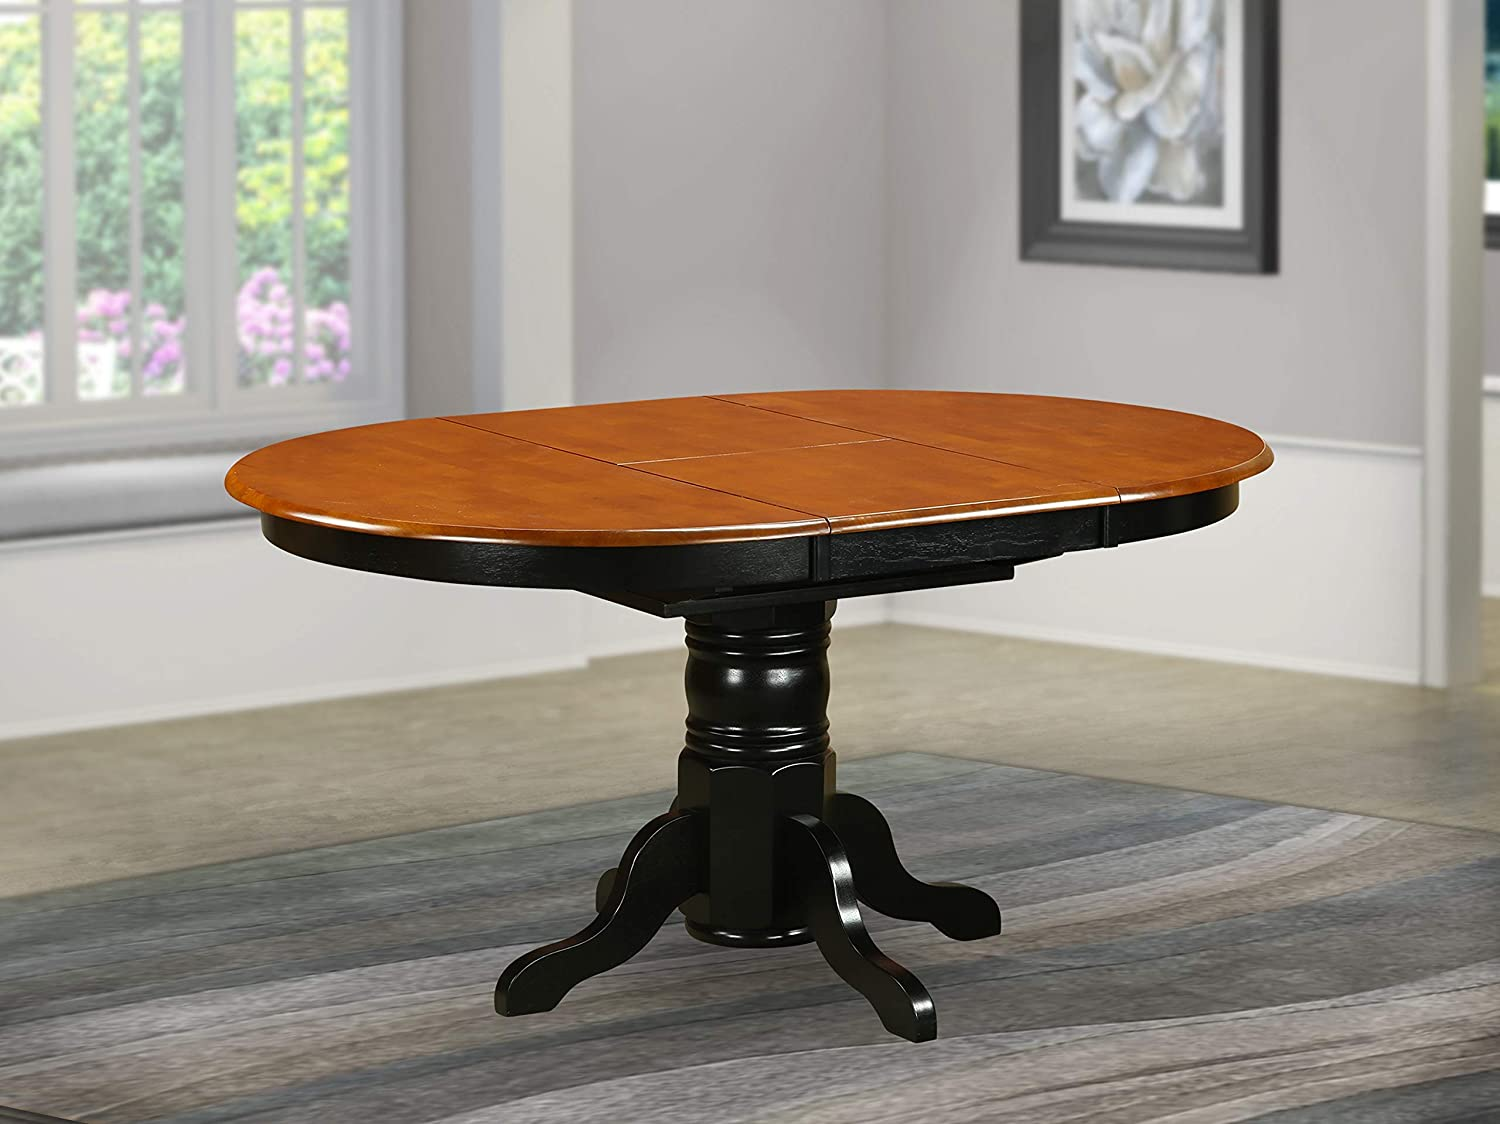 East West Furniture AVT-BLK-TP Oval 42/60-Inch Table with 18-Inch Butterfly Leaf, Medium, Black Finish